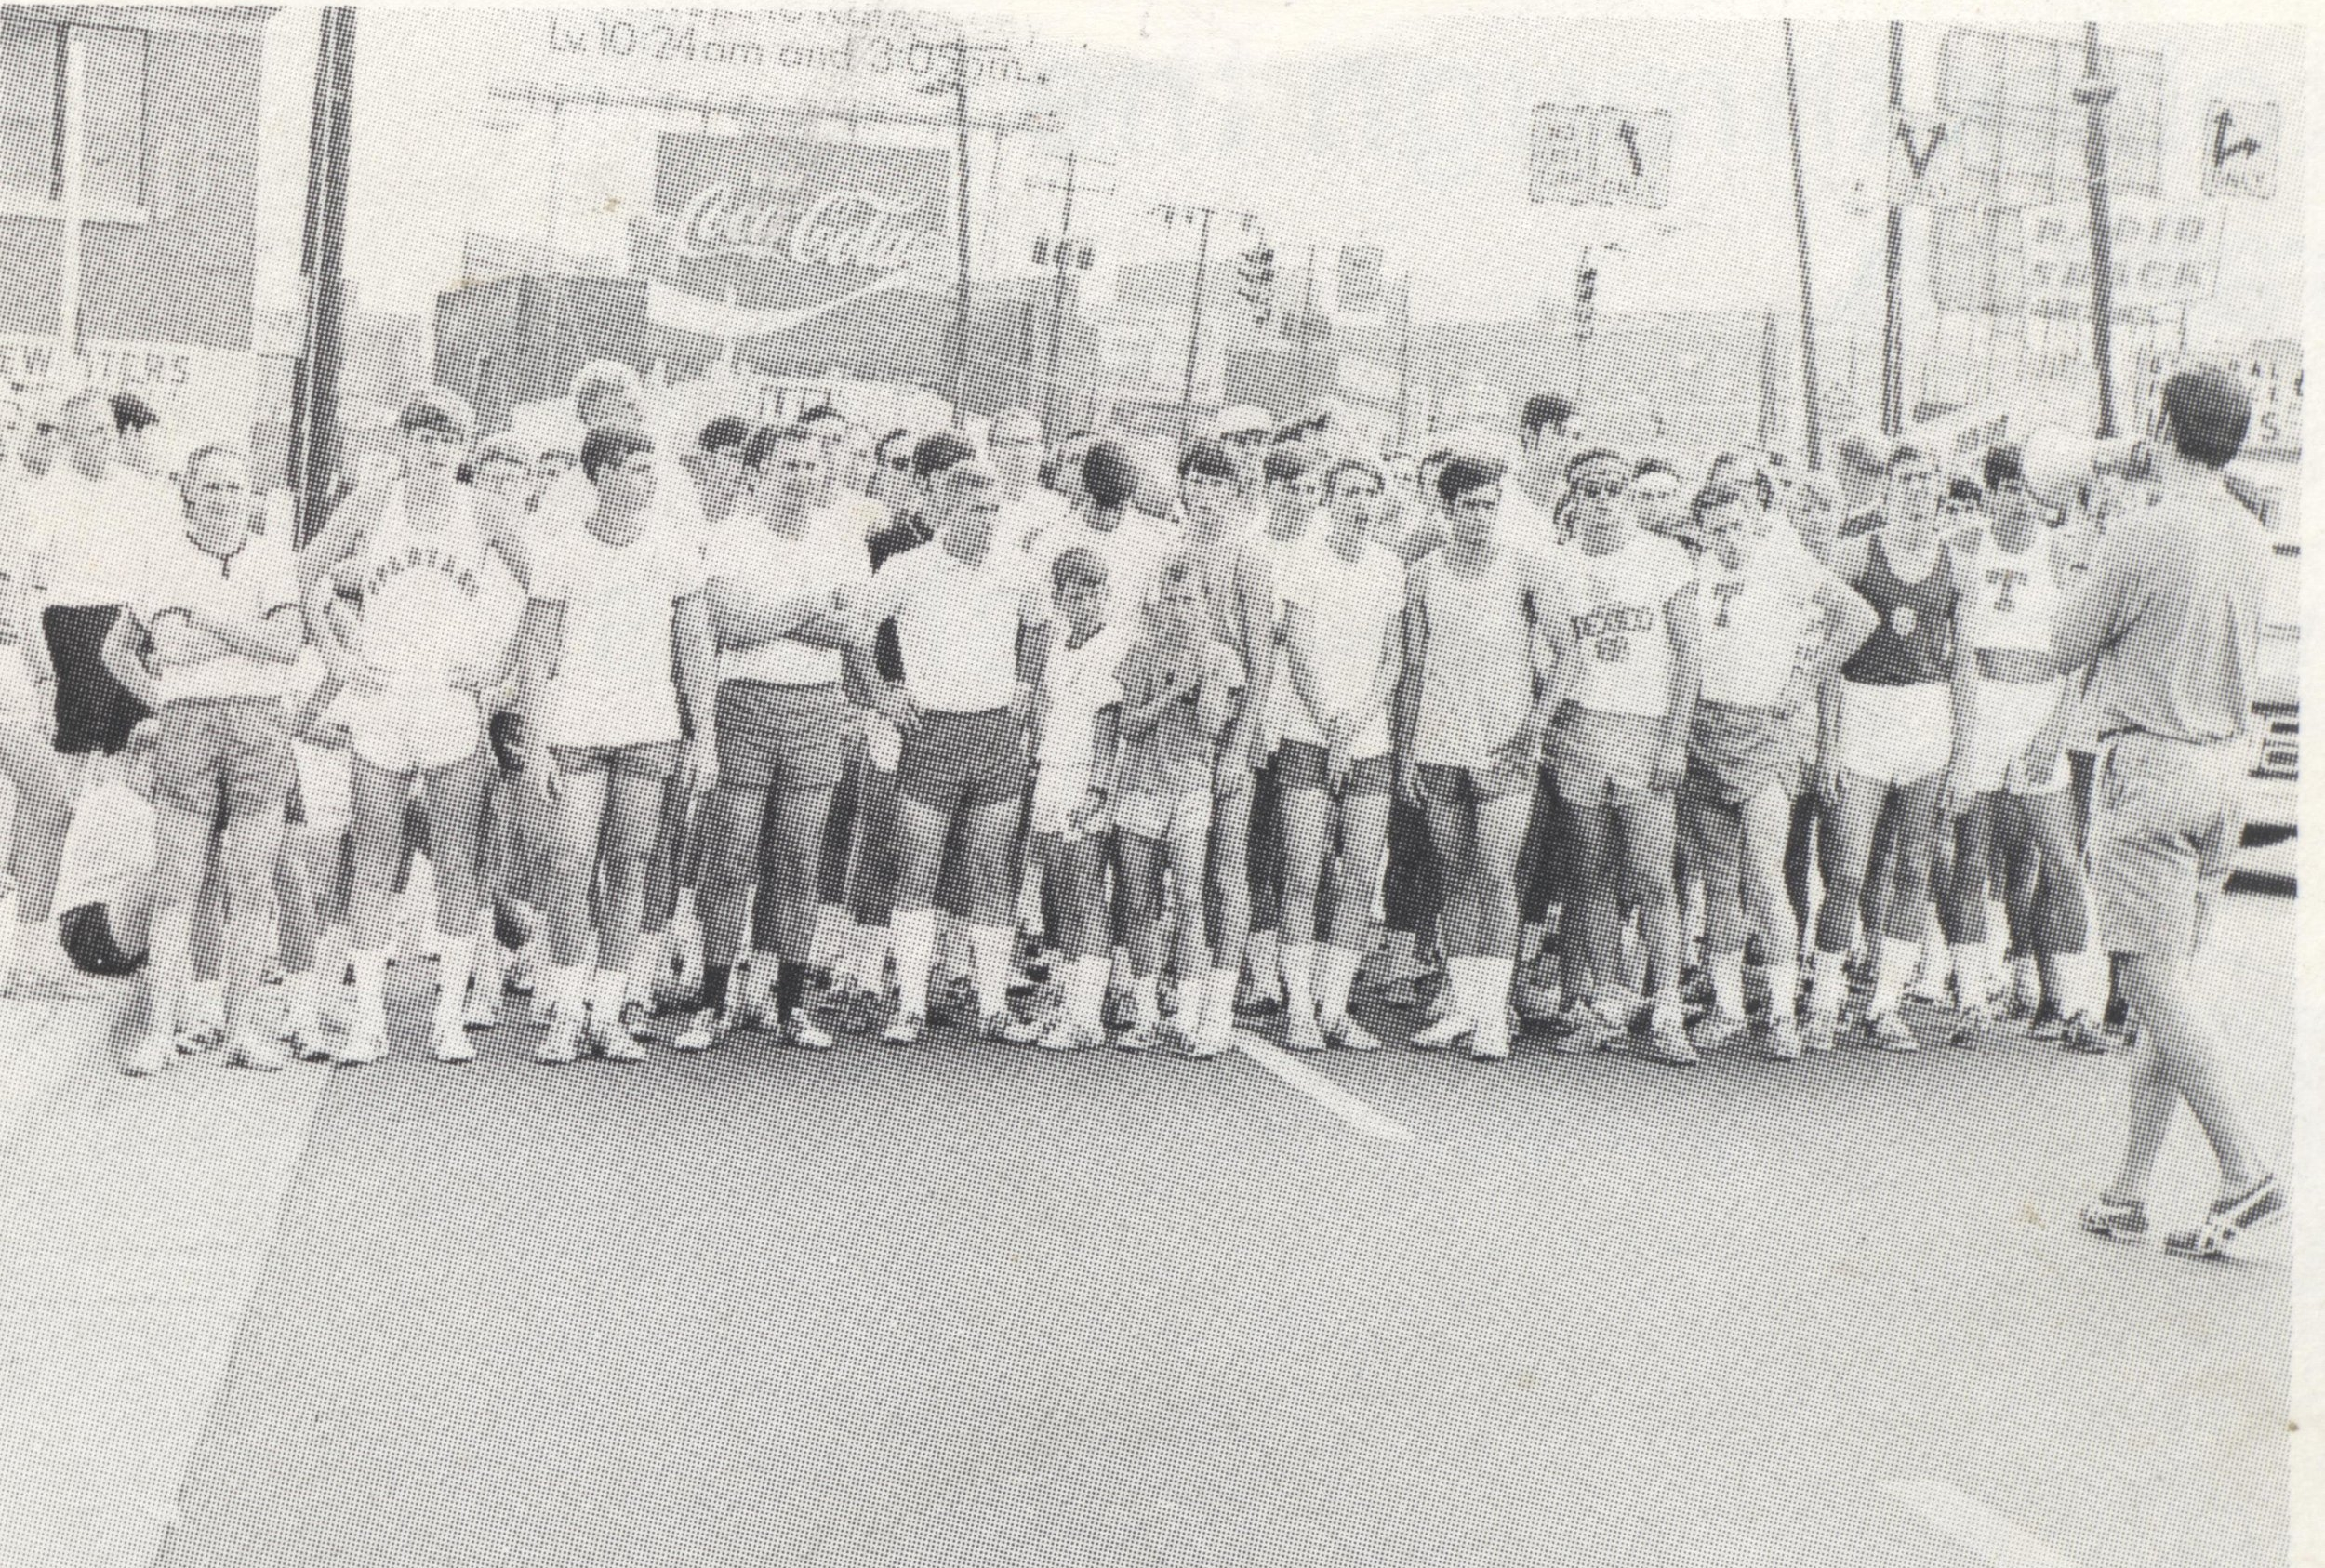 The start of the 1970 Peachtree. Tim Singleton is holding the bullhorn.